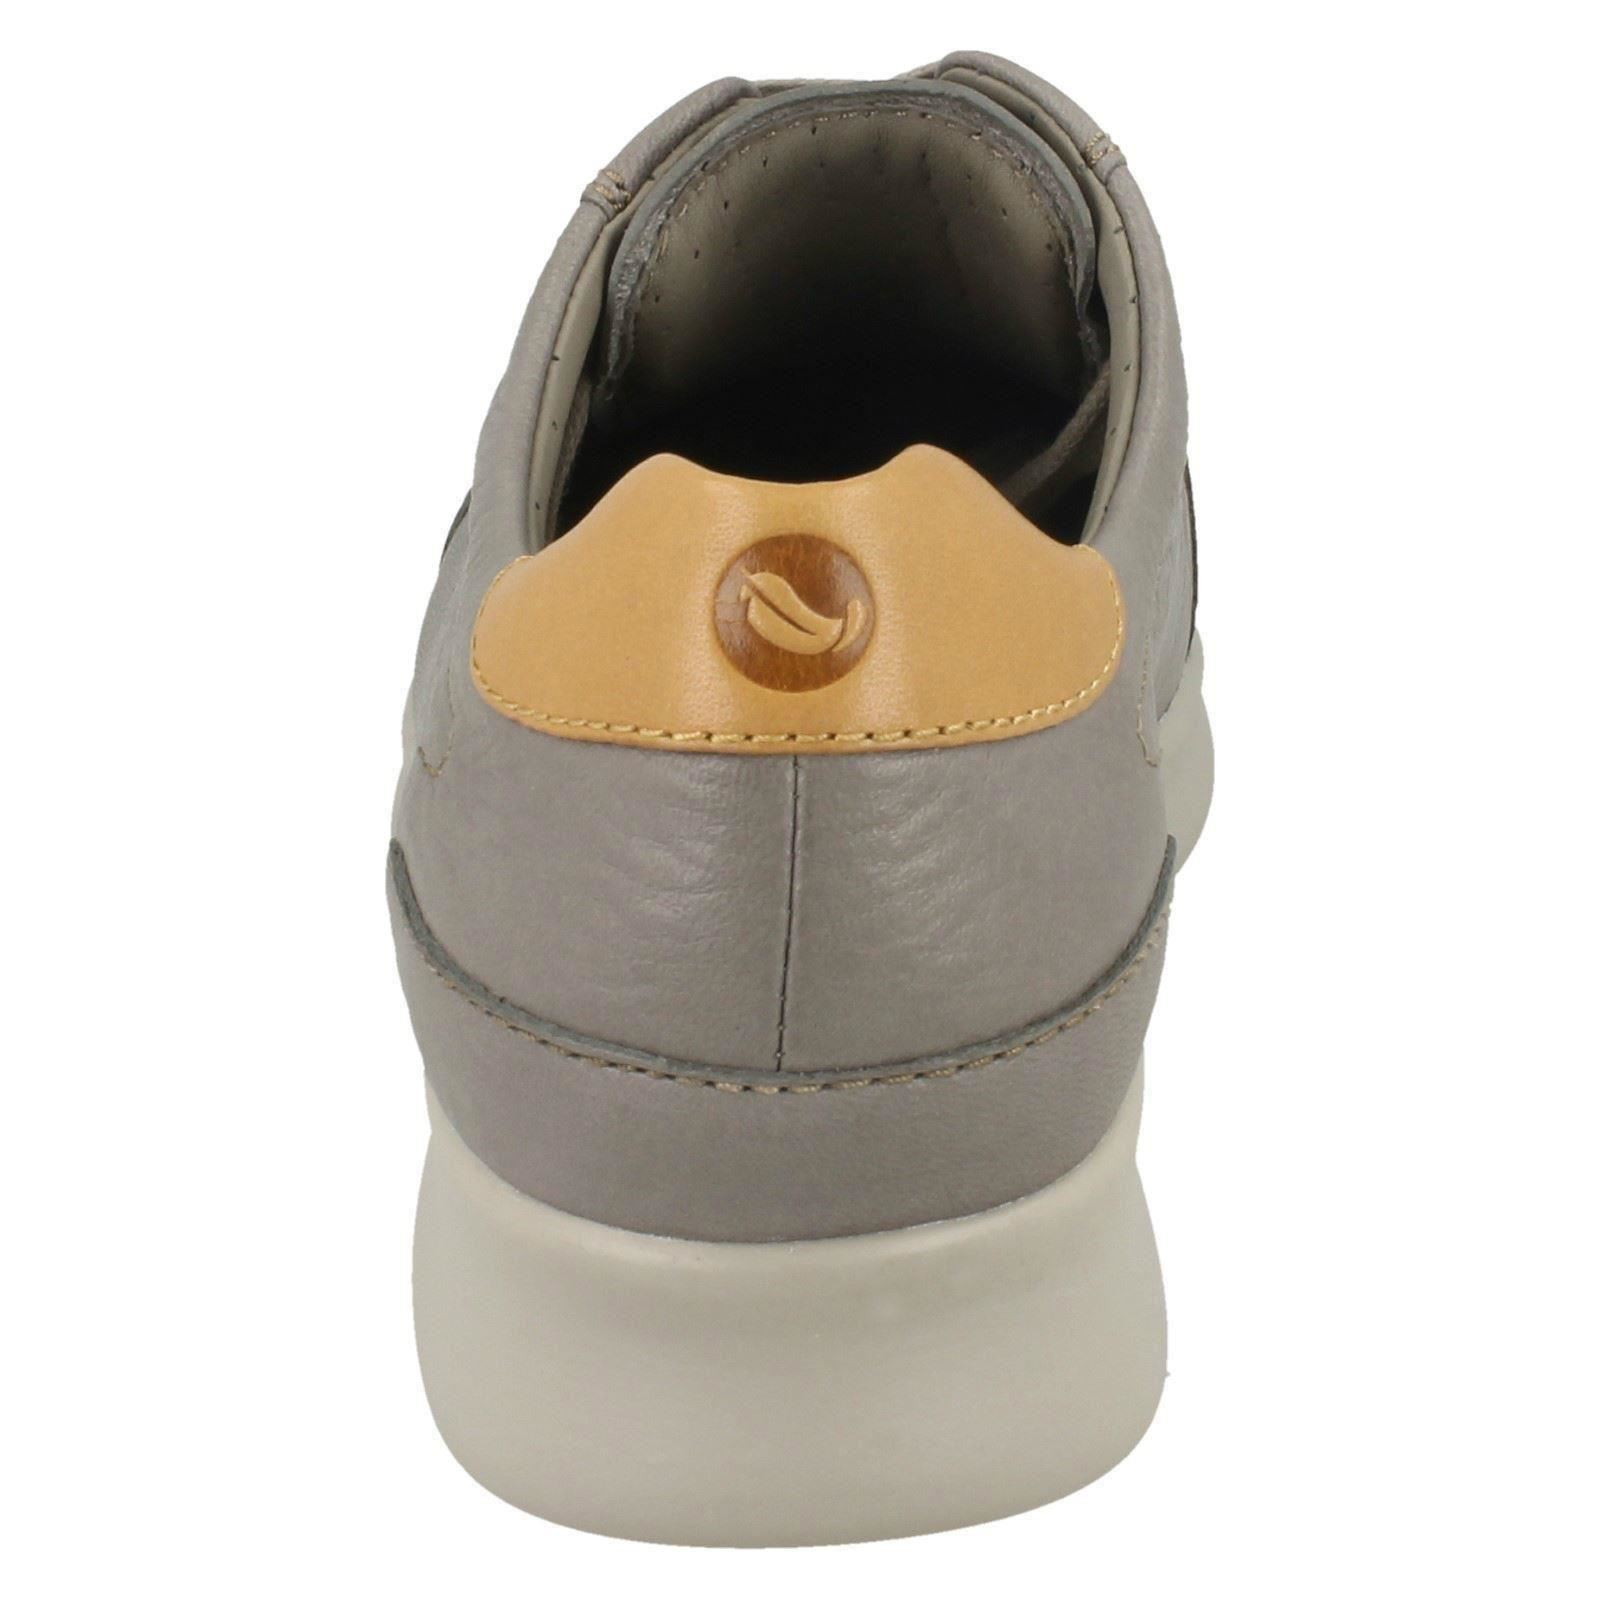 Details about Unstructured By Clarks Ladies Casual Shoes Un Flare